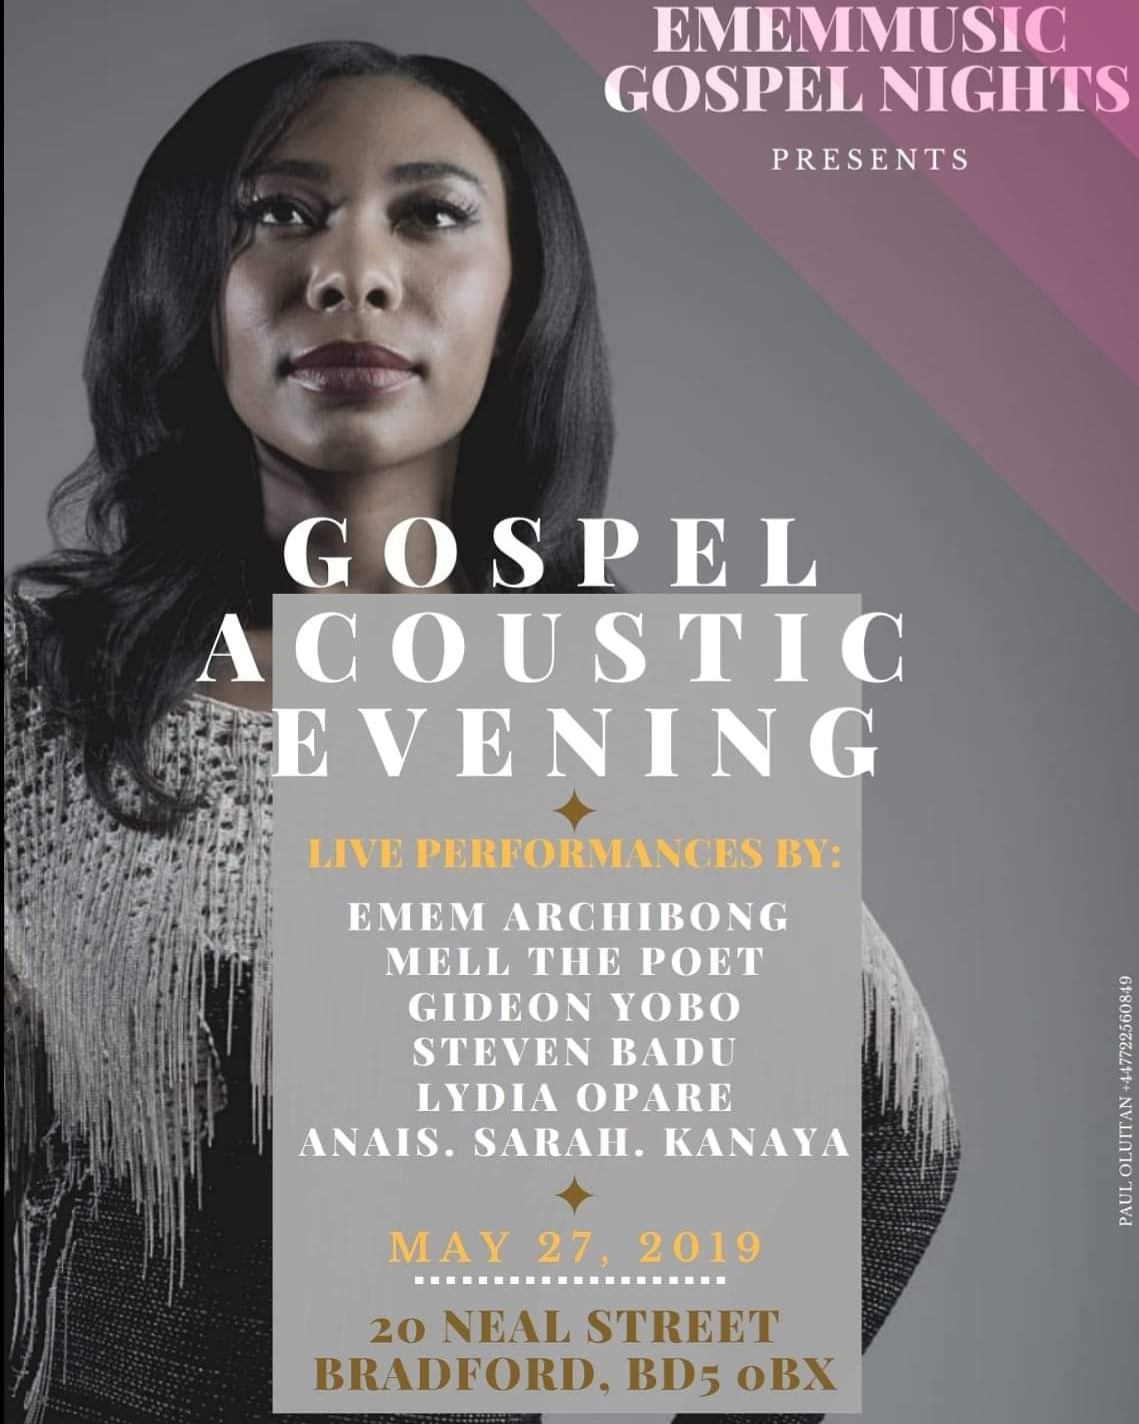 Ememmusic gospel nights